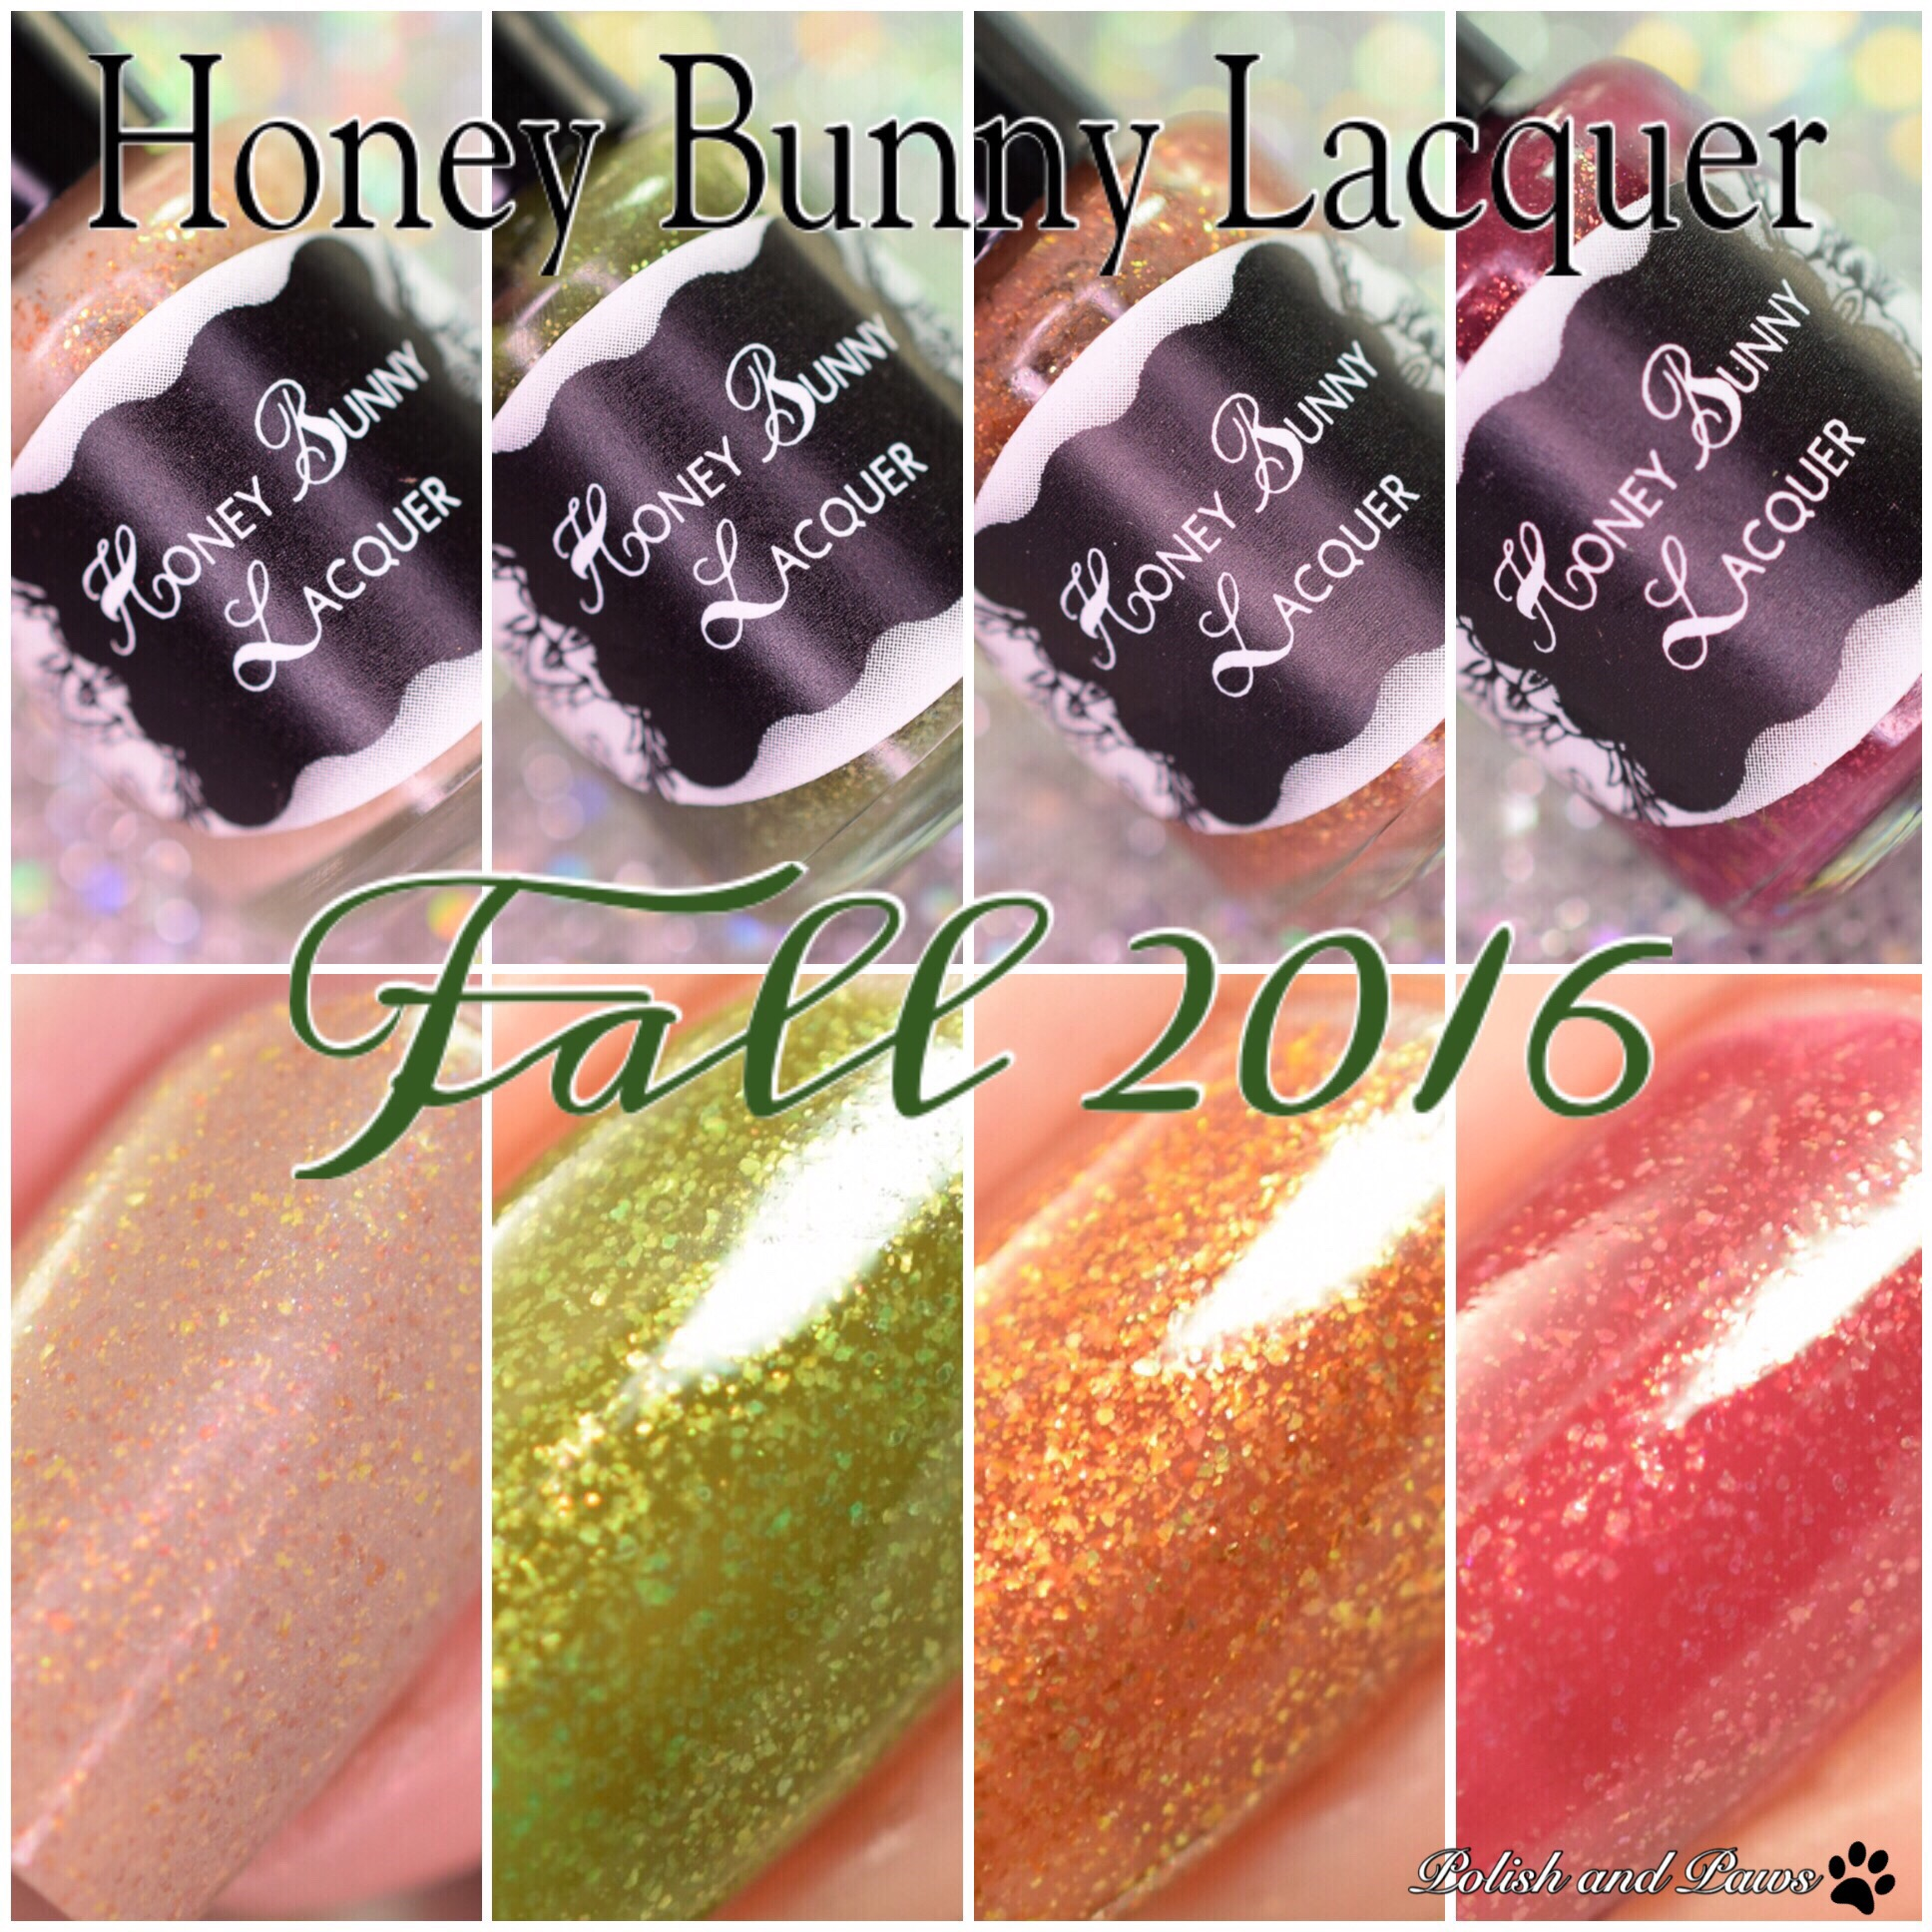 Honey Bunny Lacquer Fall 2016 collection